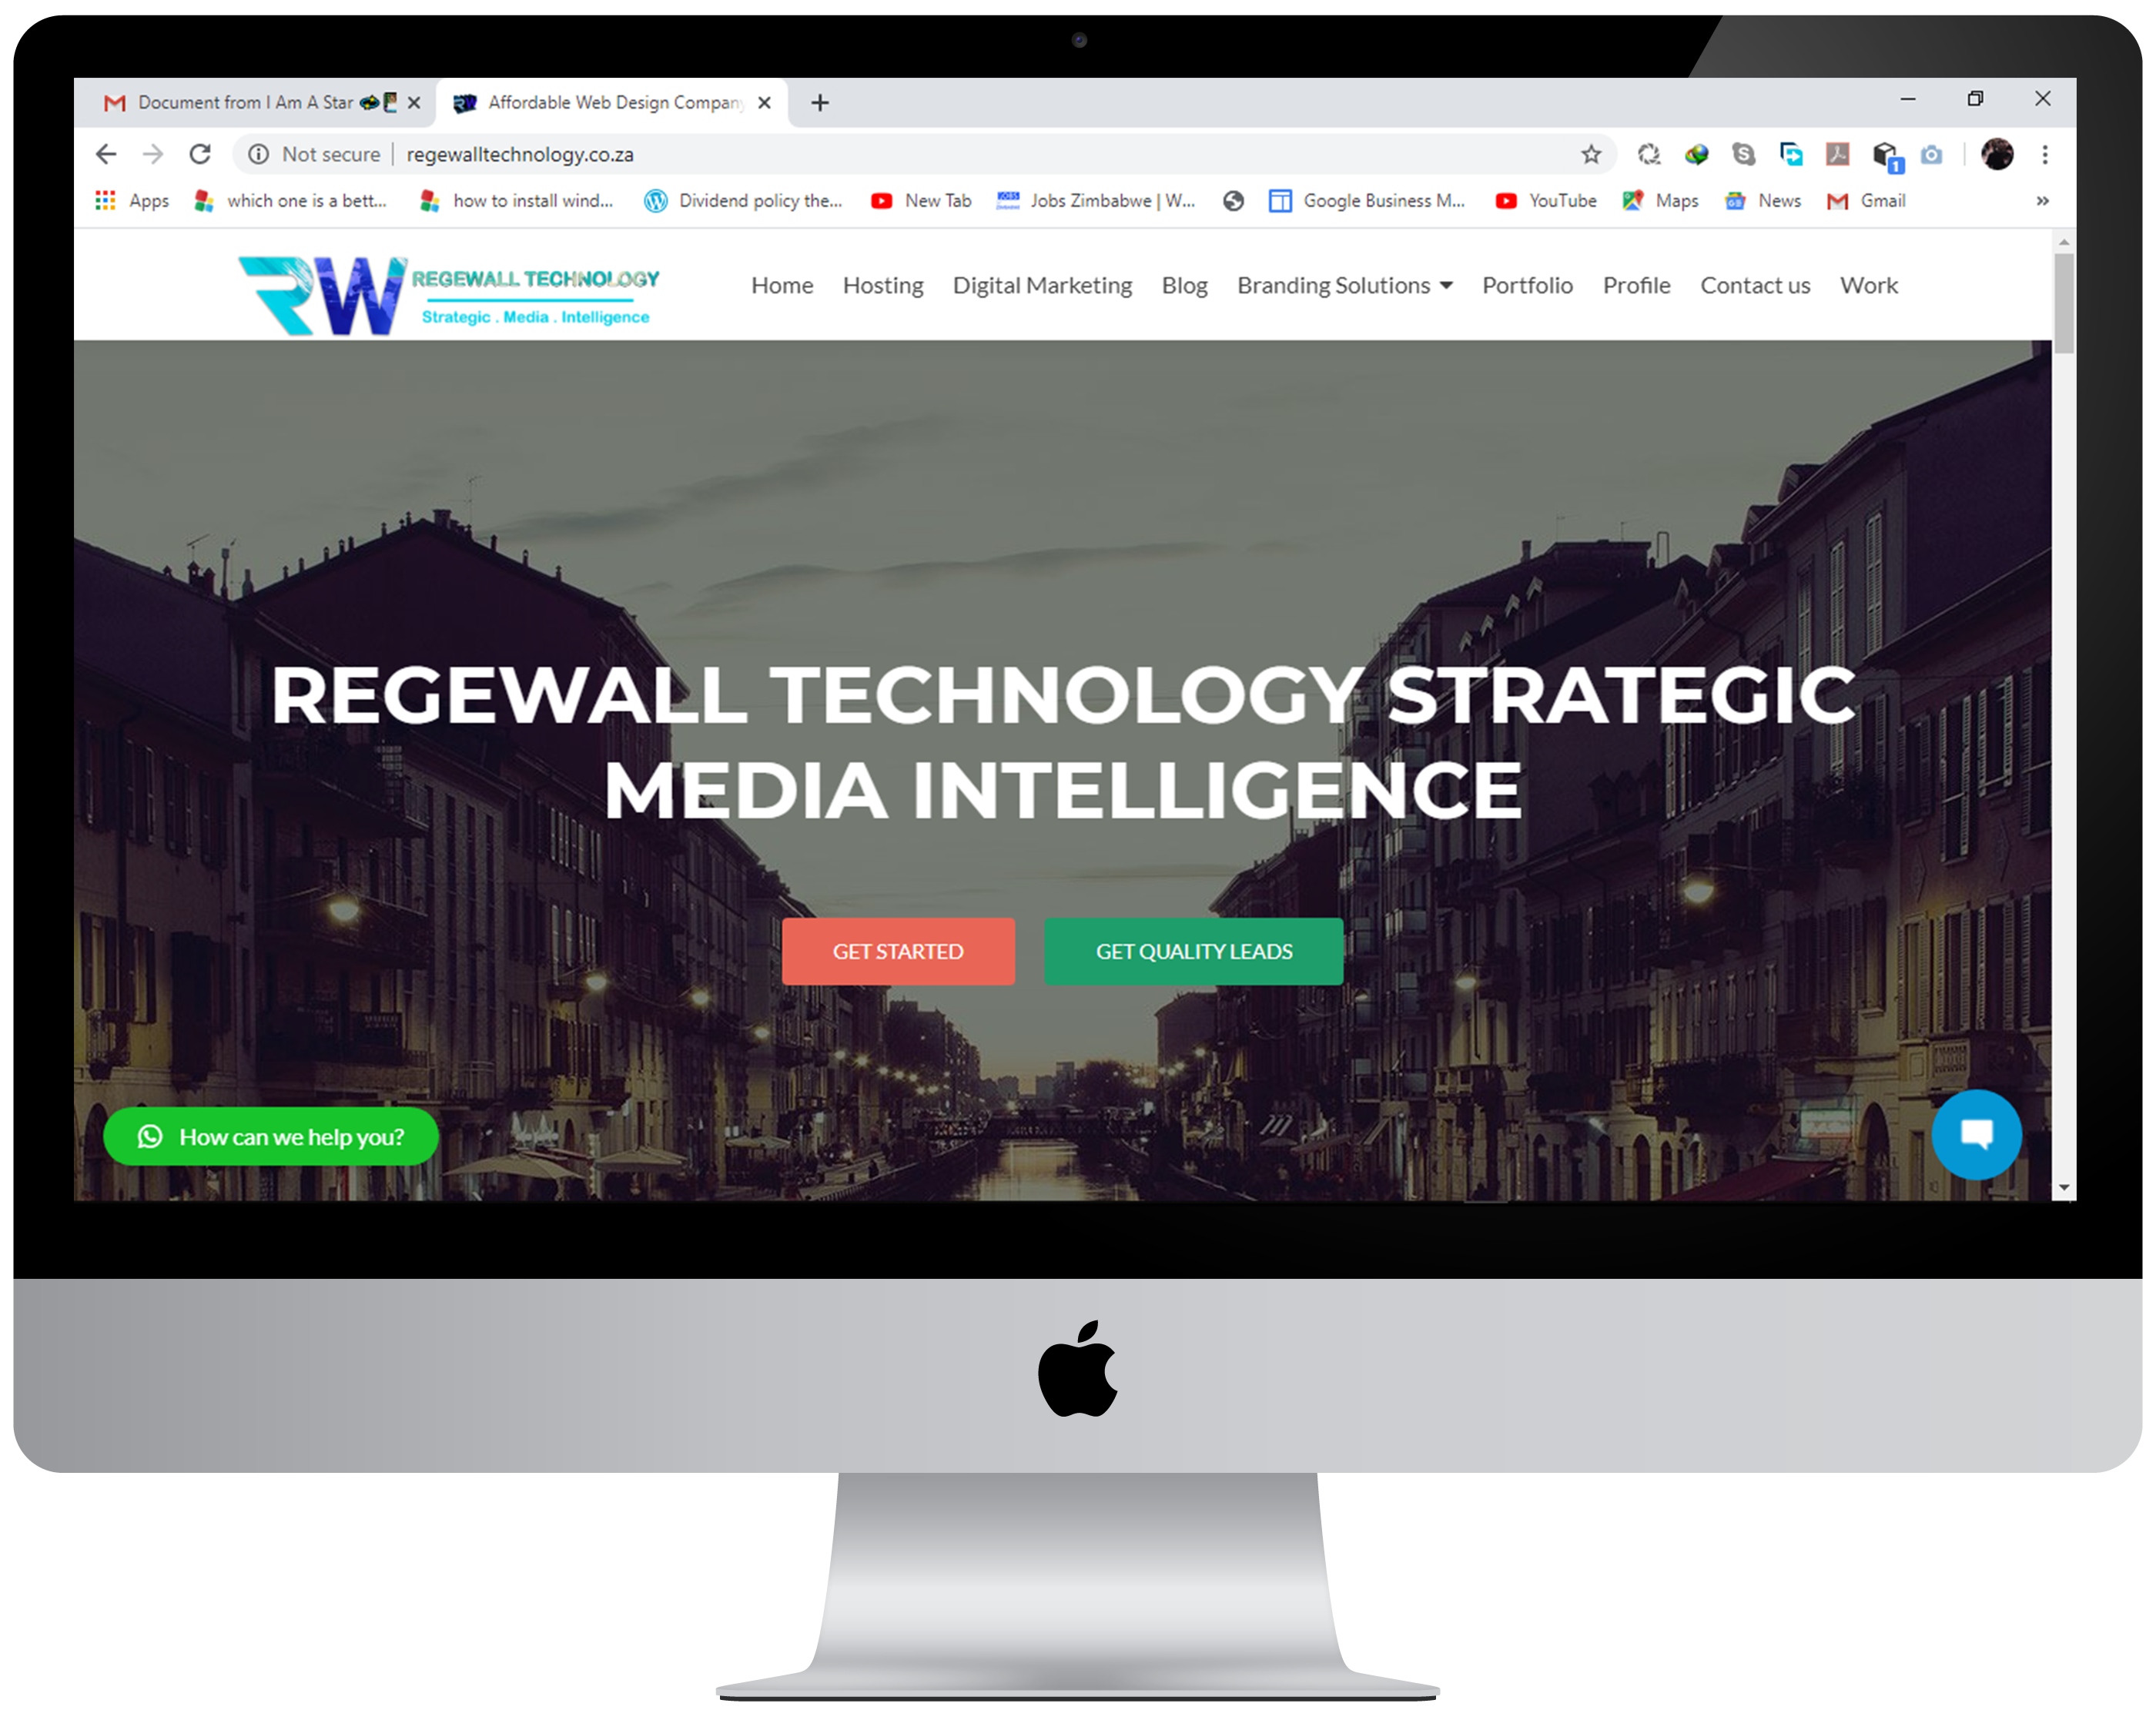 Regewall Technology